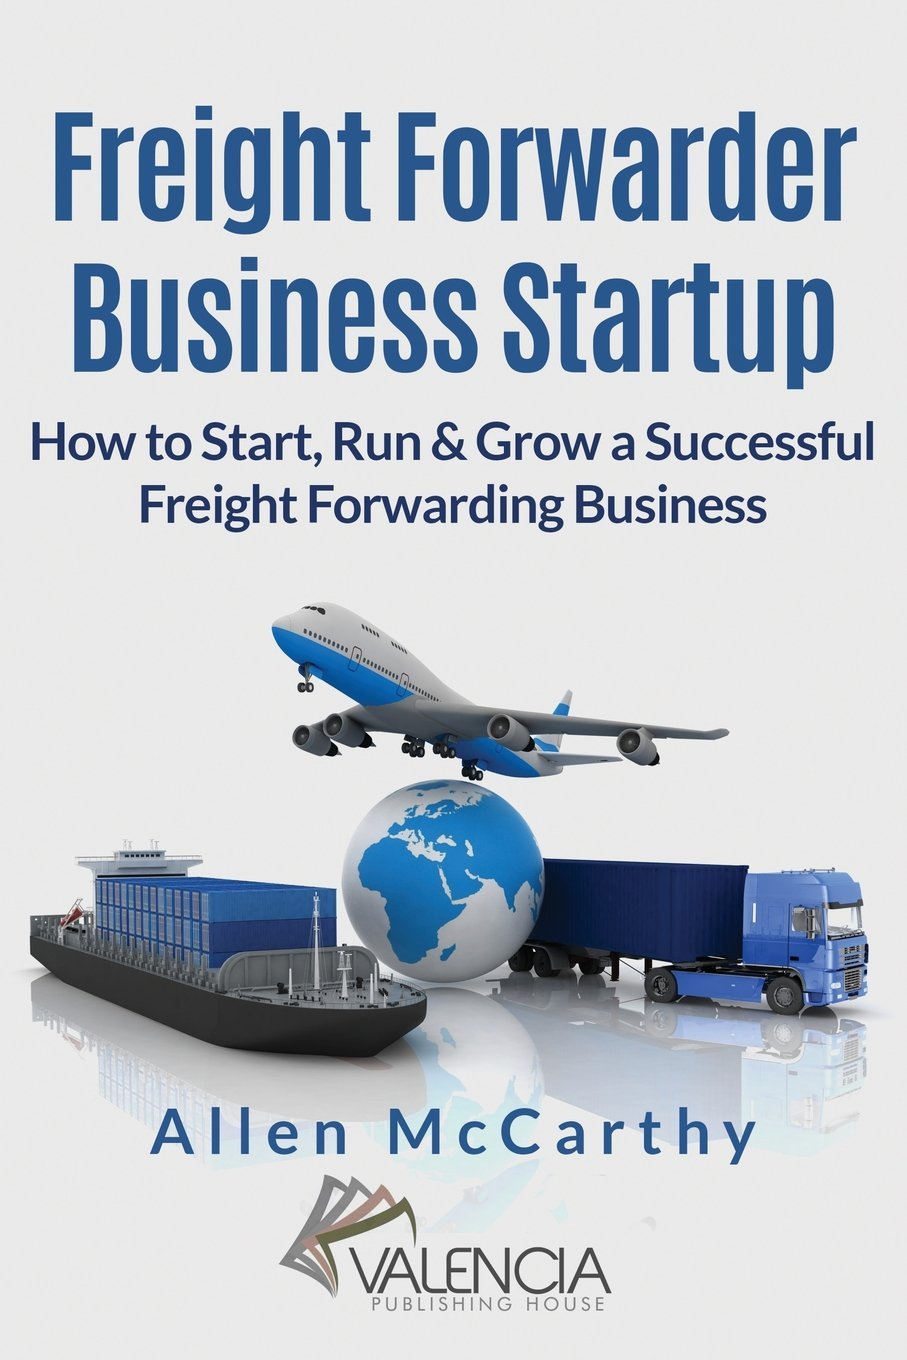 Freight Forwarder Business Startup: How to Start, Run & Grow a Successful Freight  Forwarding Business: Allen McCarthy: 9781542905183: Amazon.com: Books